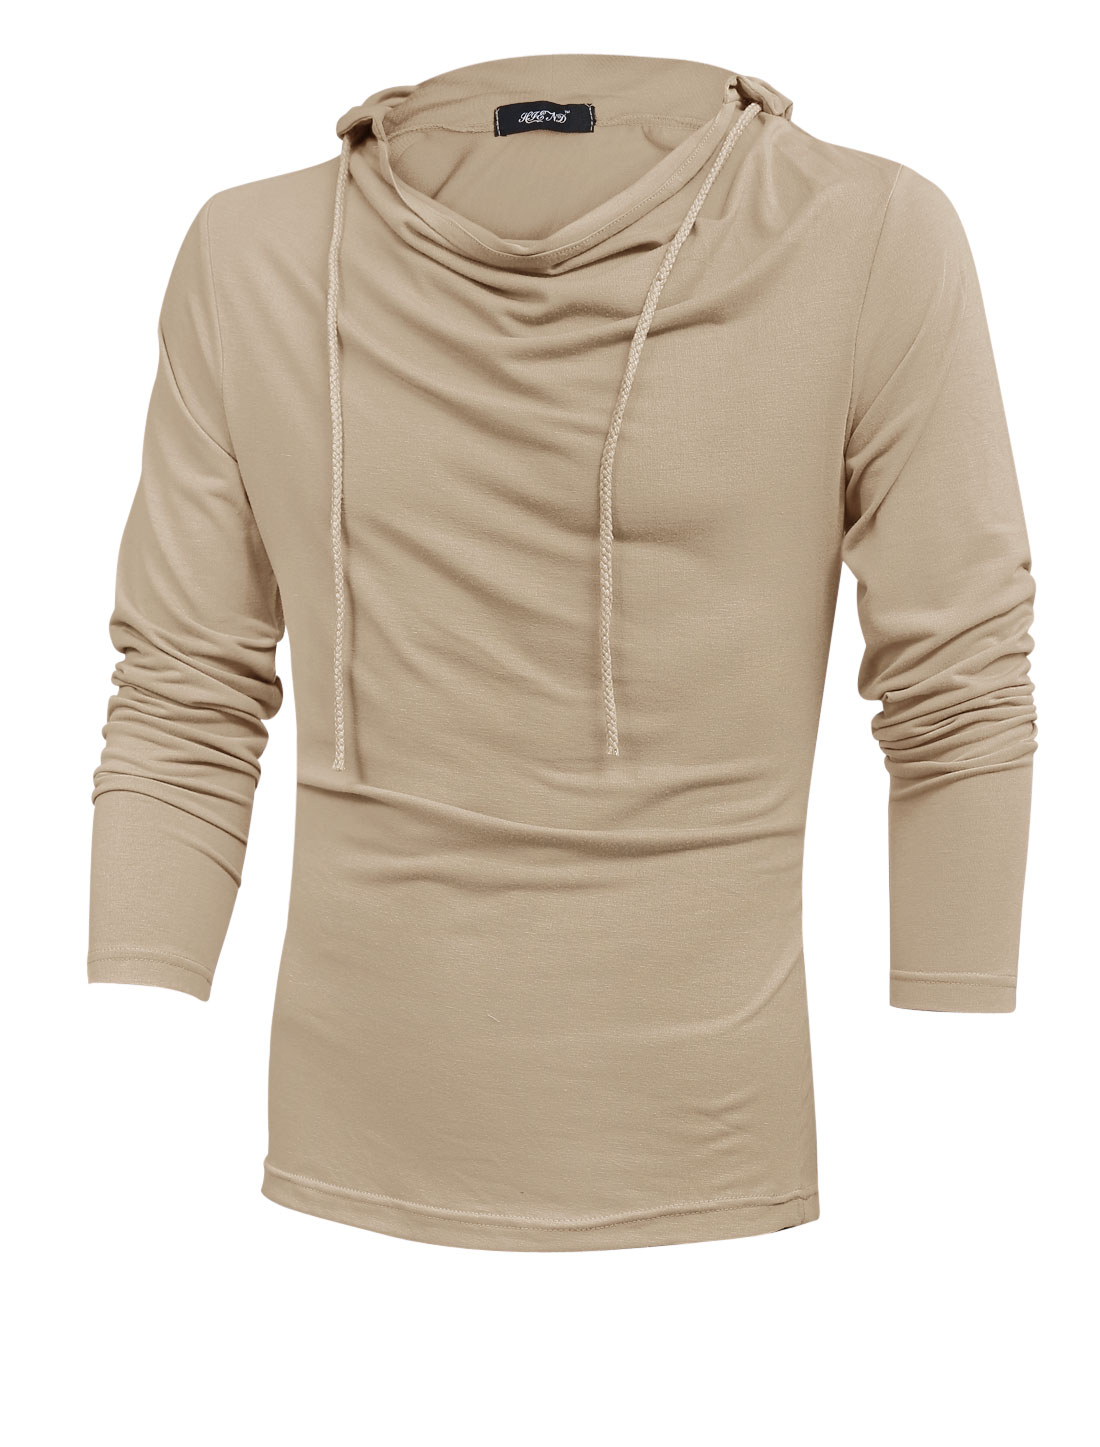 Men Slipover Drawstring Hooded Fashionable Sweatshirt Camel M